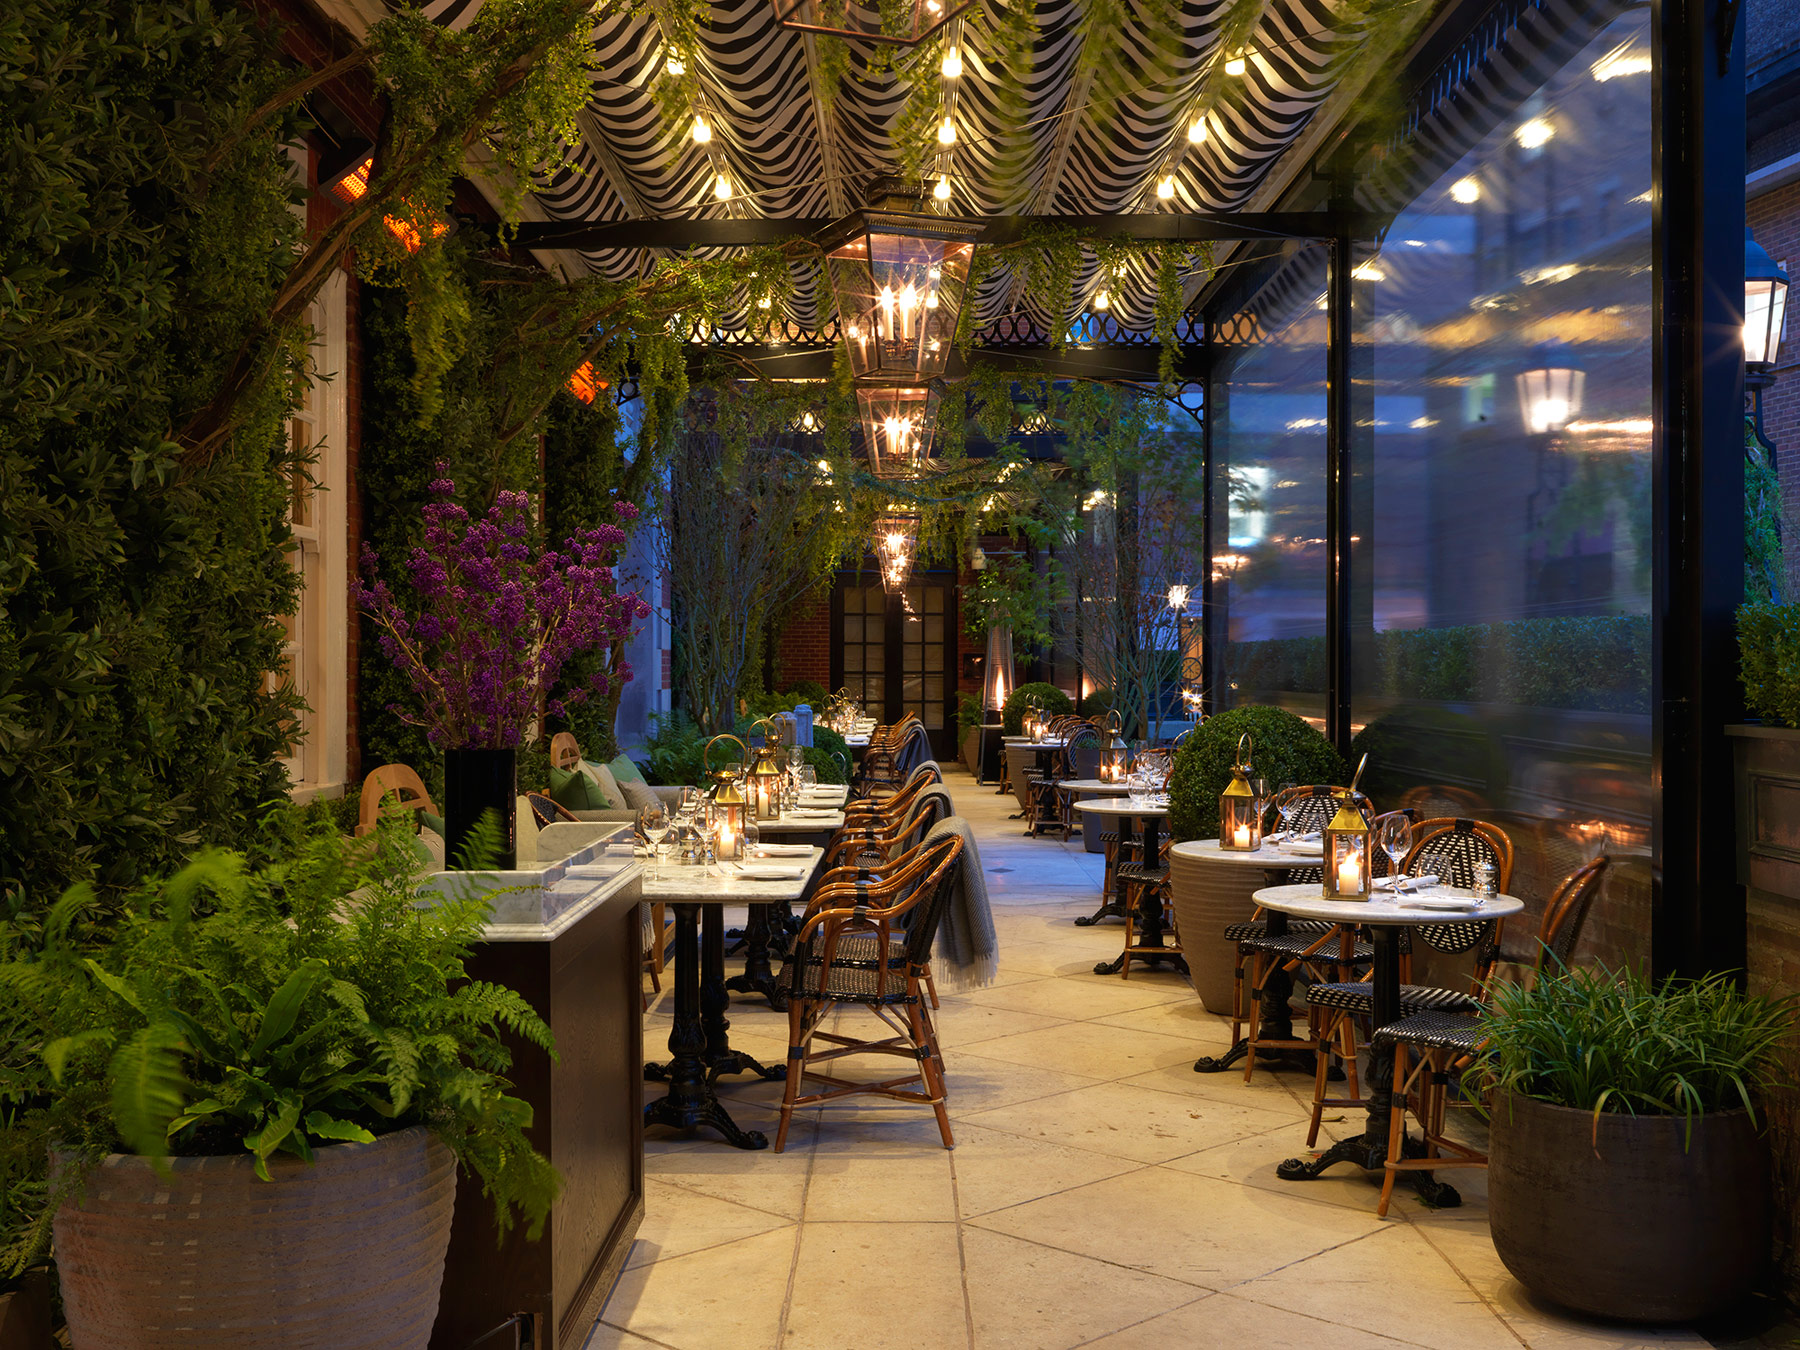 Dalloway-Terrace-Bloomsbury-3